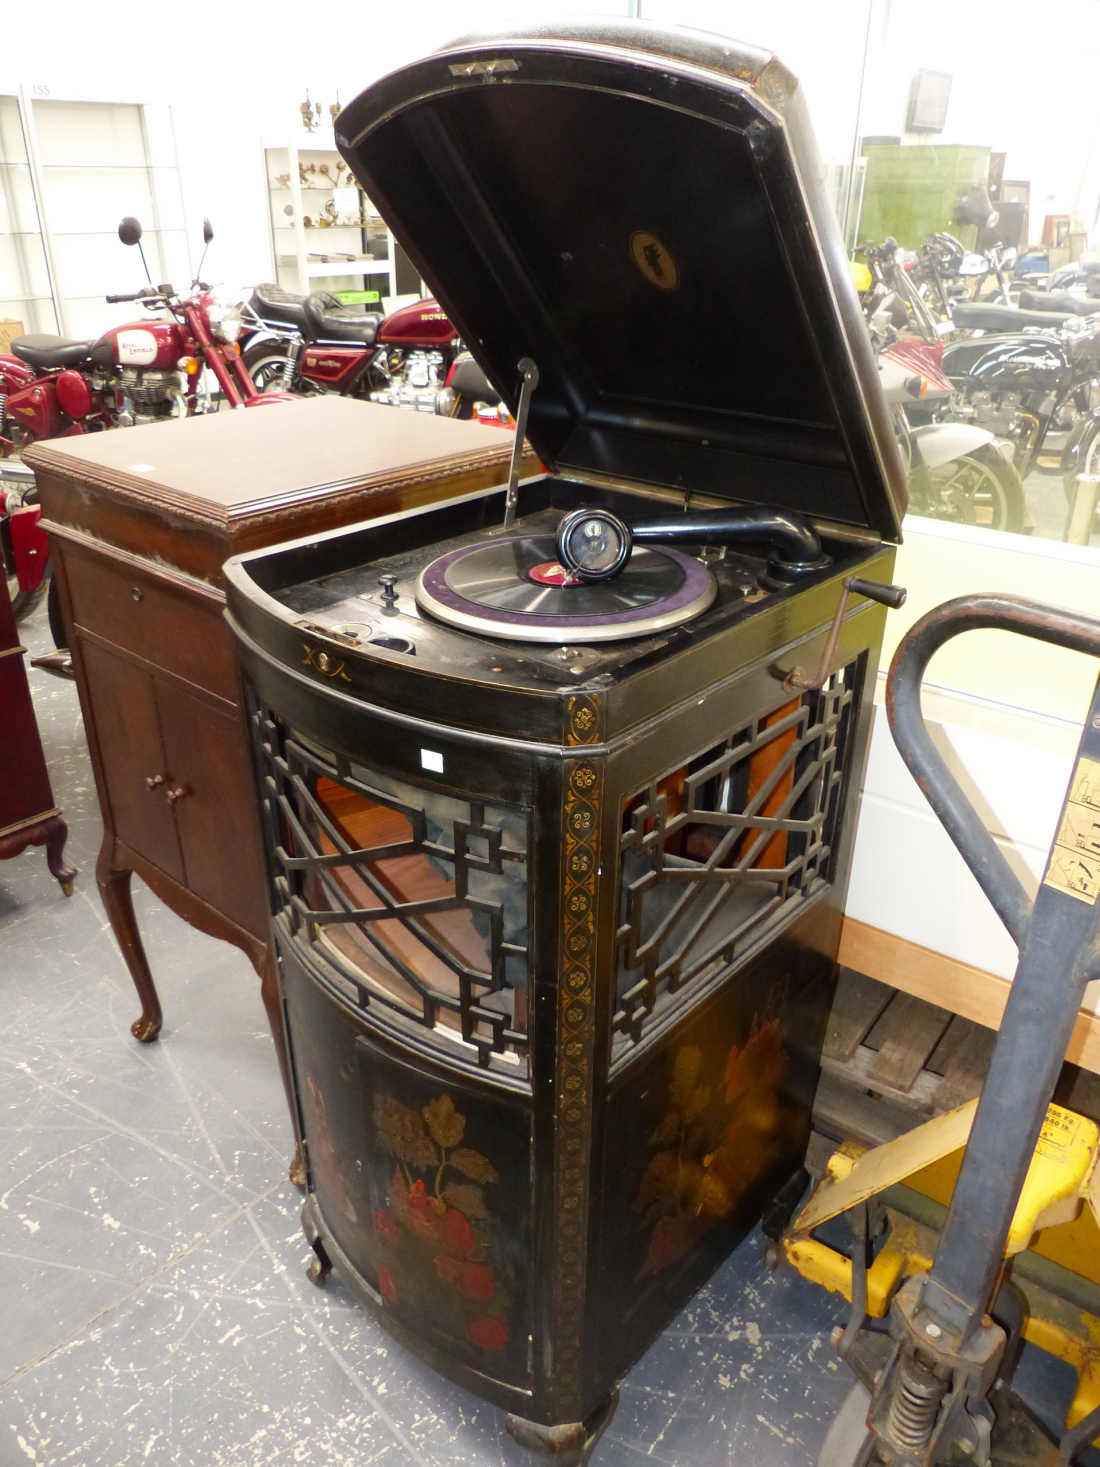 Lot 1100 - A VOX WIND UP GRAMOPHONE IN BLACK GROUND ORIENTAL GILT CASE, A BOW FRONT GRILLE OVER THE SOUND BOX